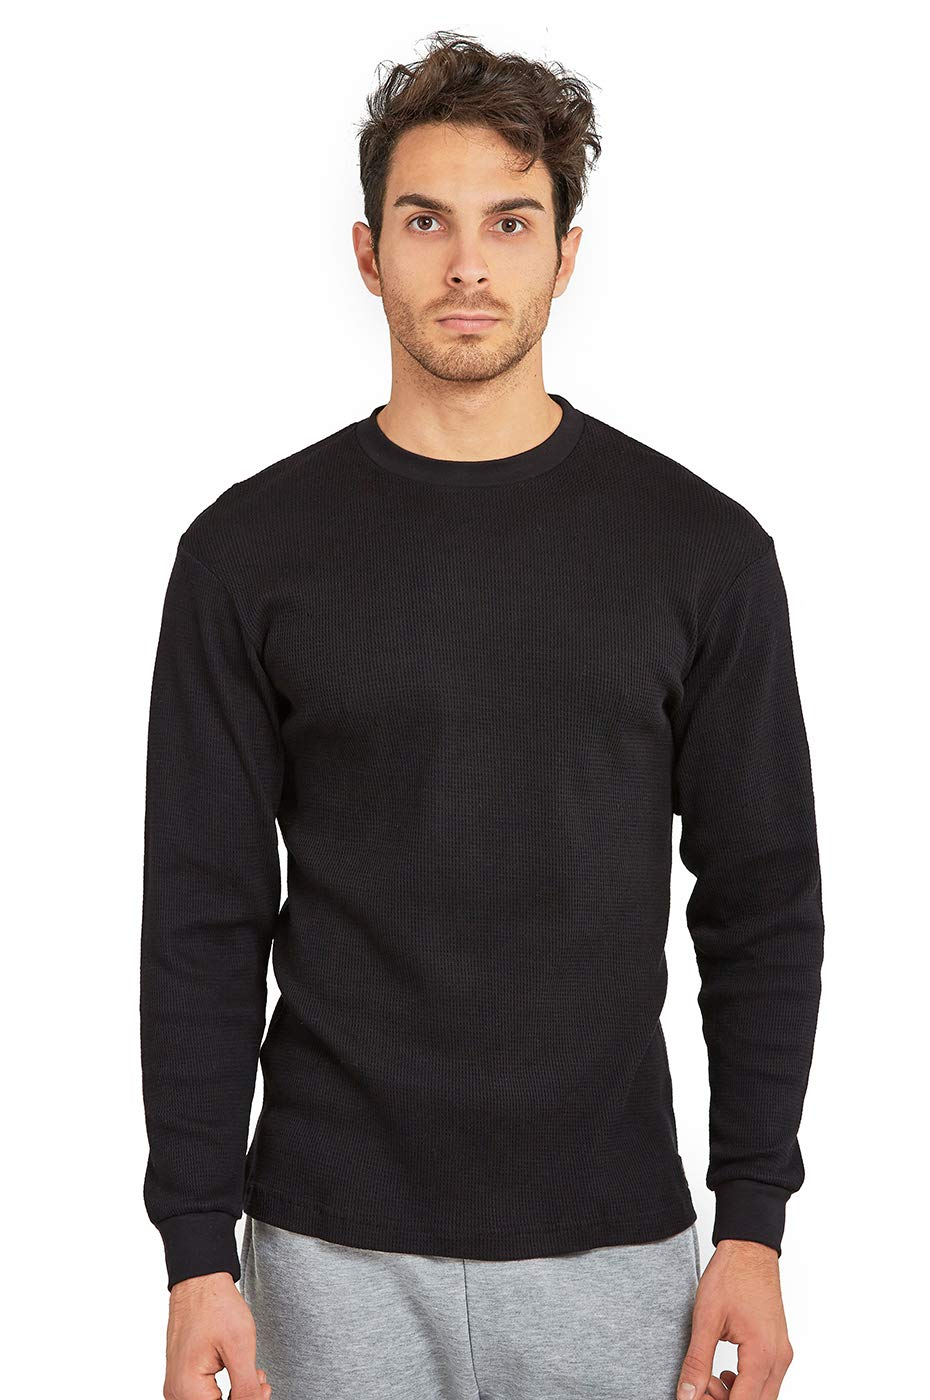 Men's Classic Waffle-Knit Heavy Thermal Top (XL, Black) by Cottonbell